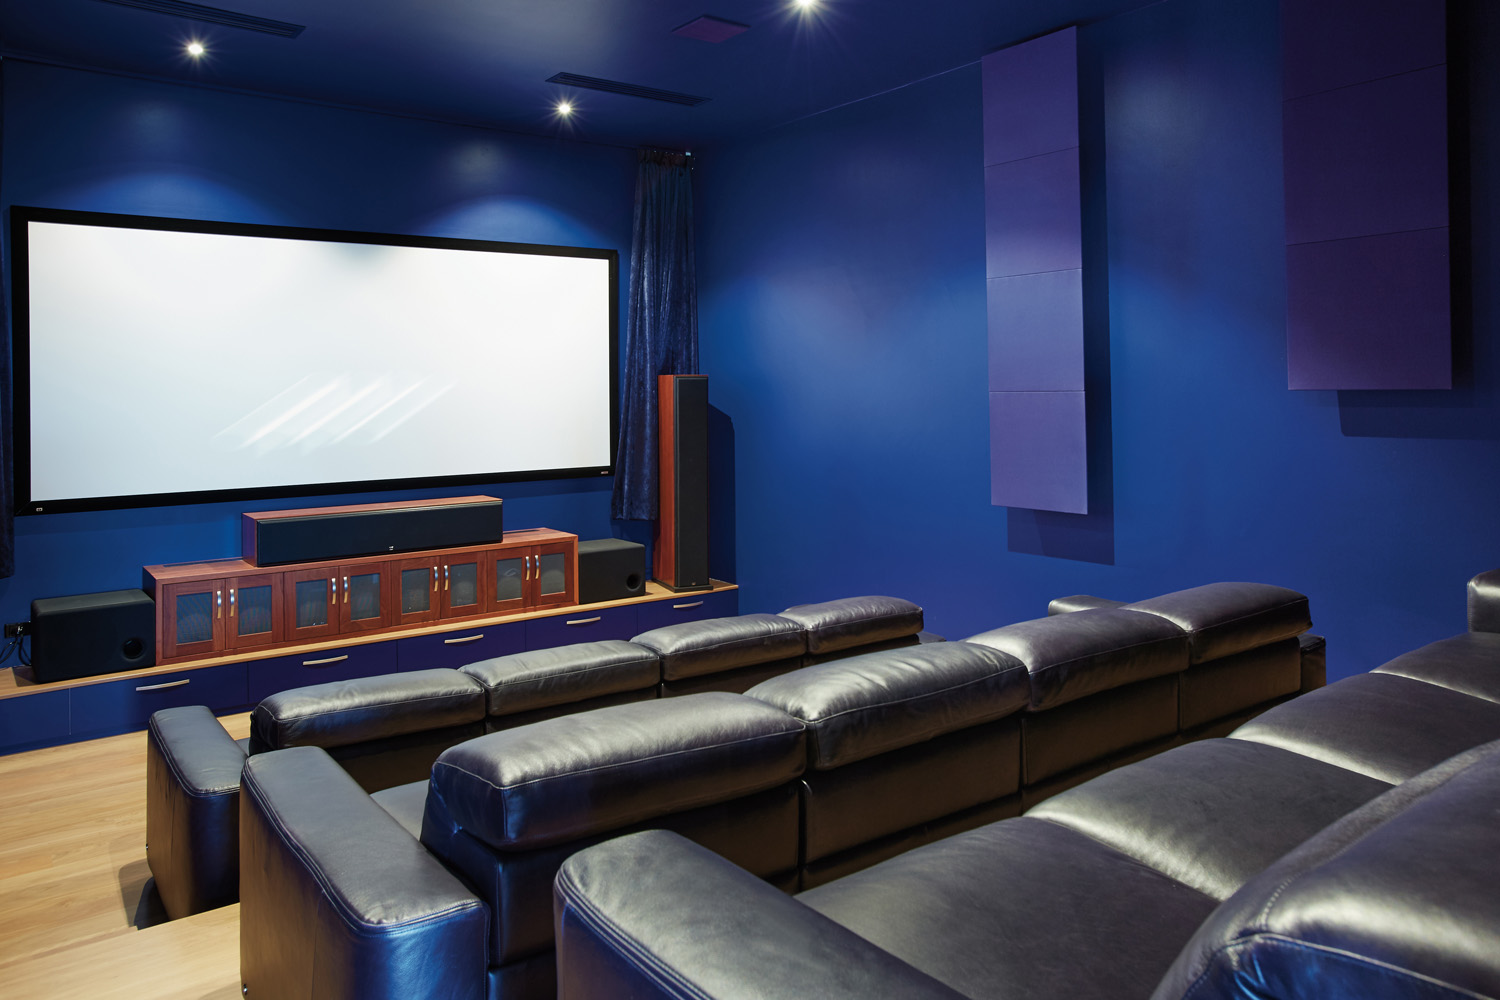 There's no need to go to the movies when you've got a cinema in your own home